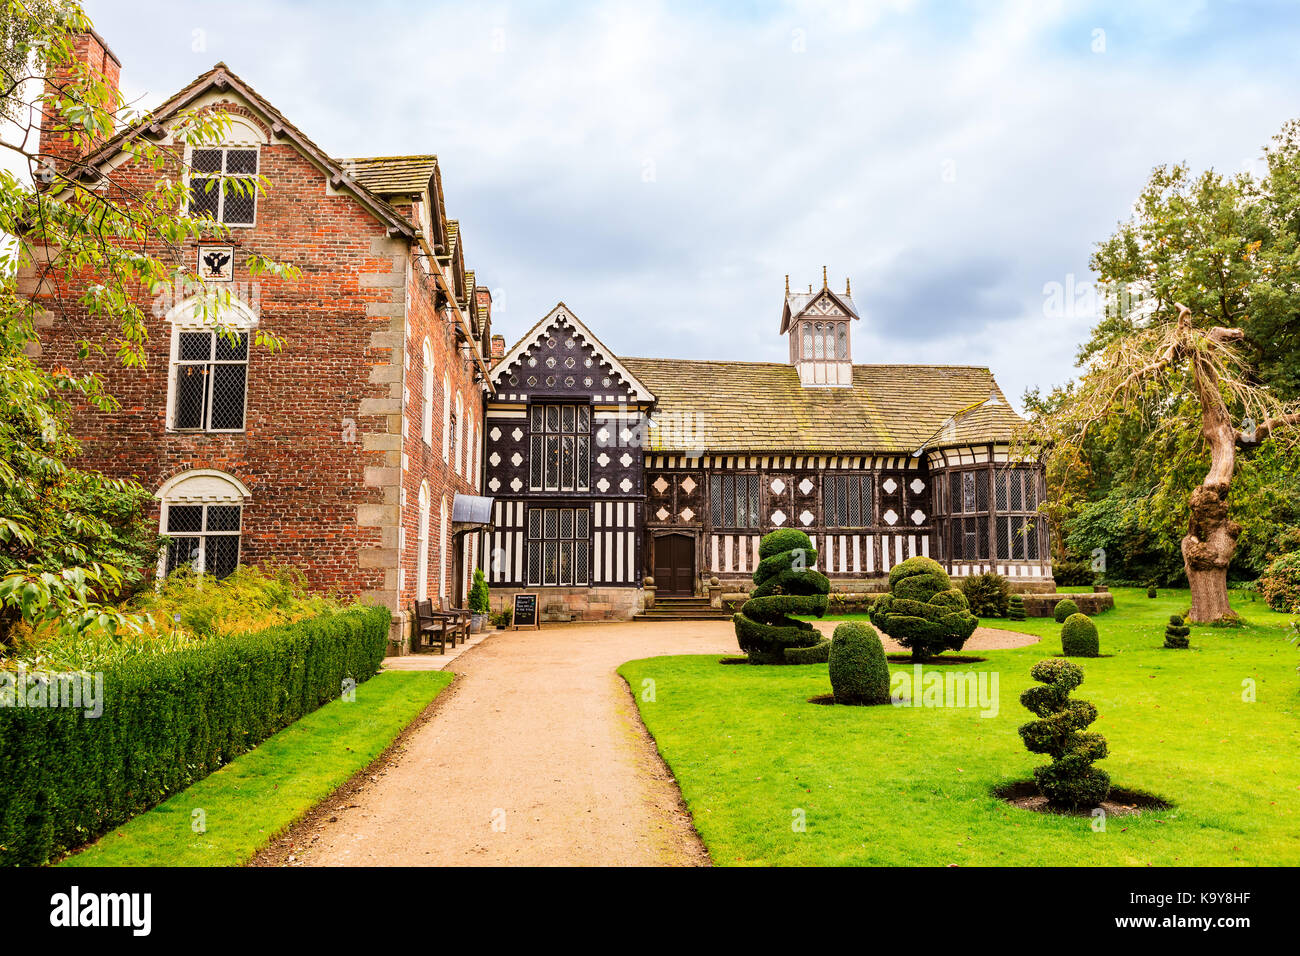 Historic Elizabethan mansion of Rufford Old Hall and garden. - Stock Image